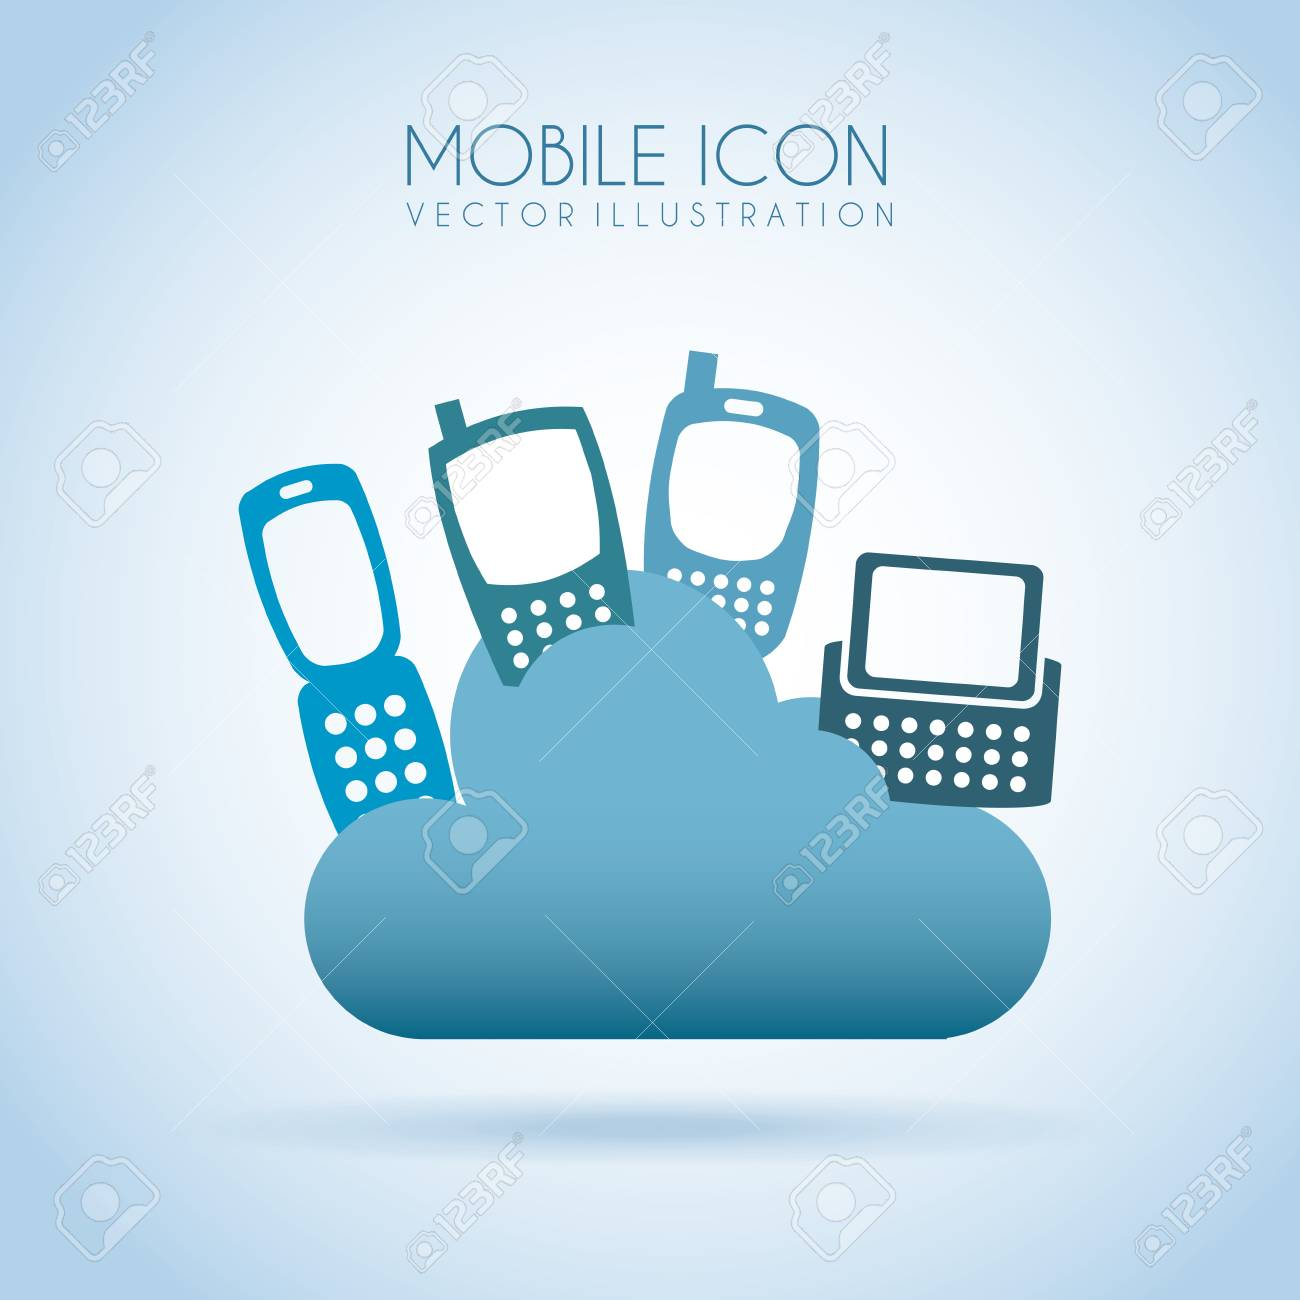 mobile icon over blue background vector illustration Stock Vector - 19979646